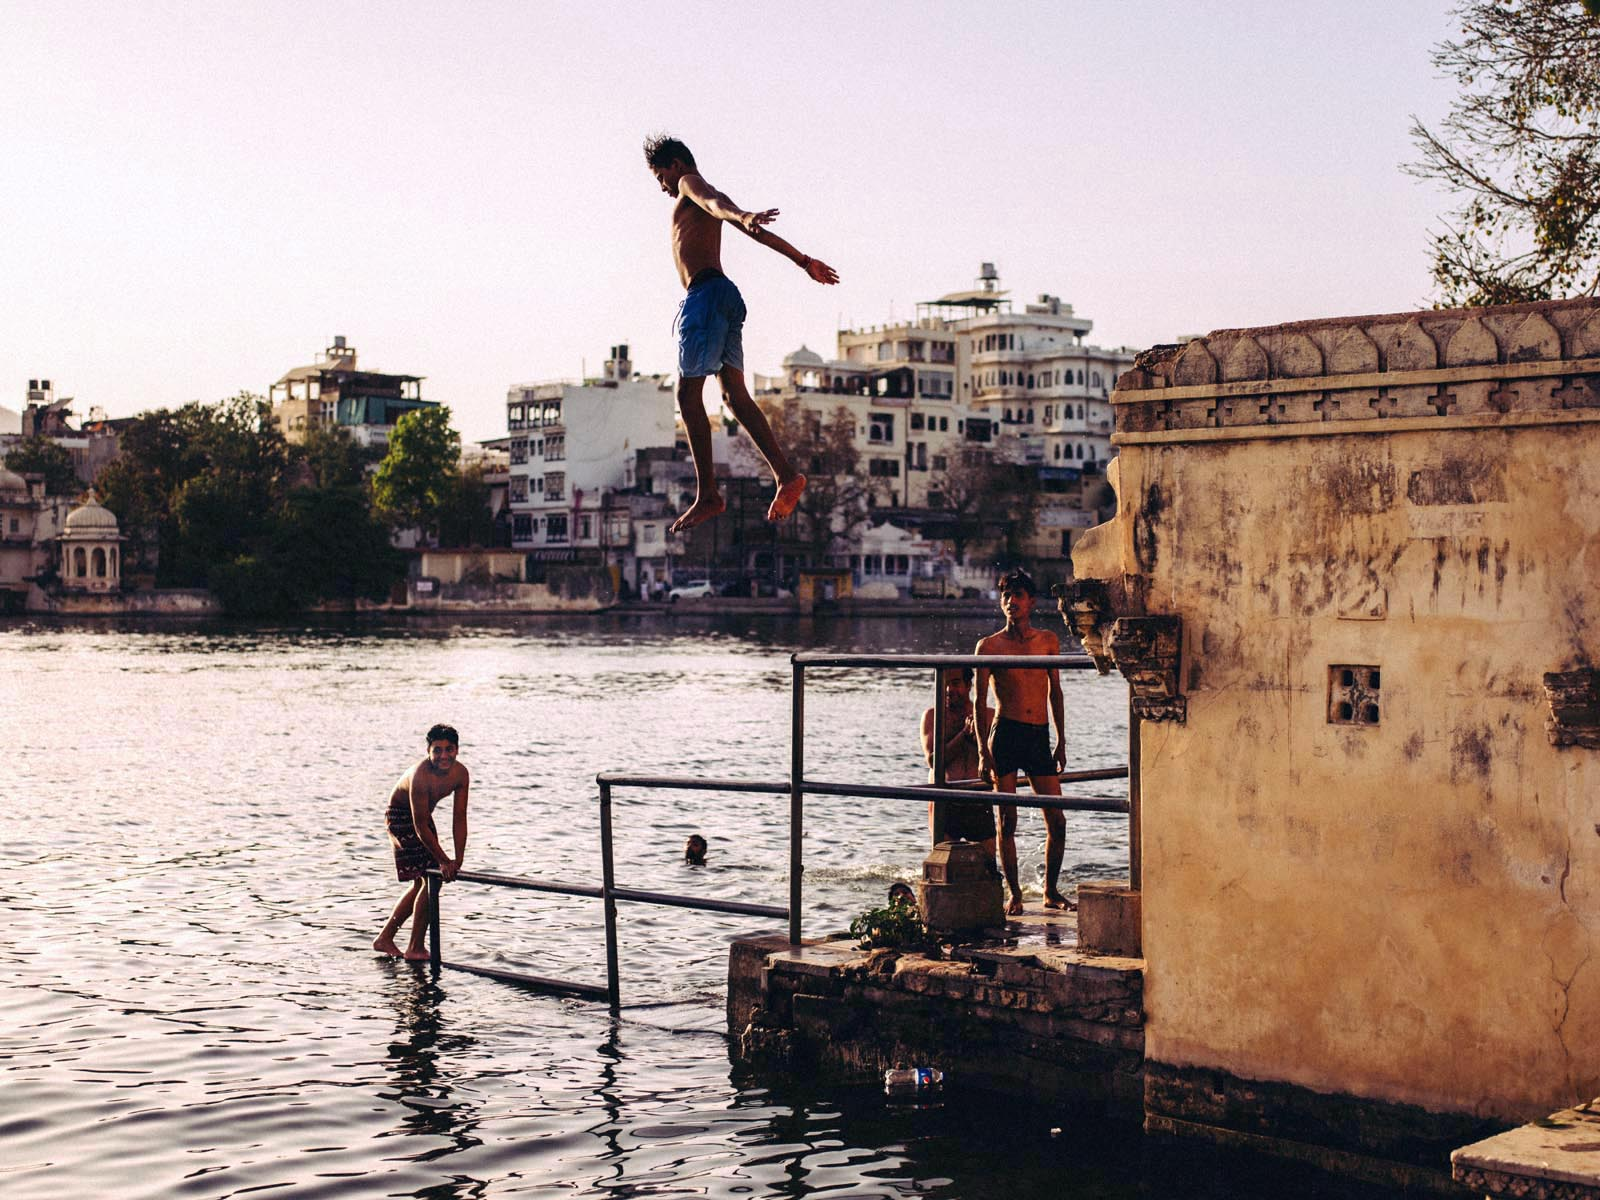 Boys playing in the river in Udaipur.